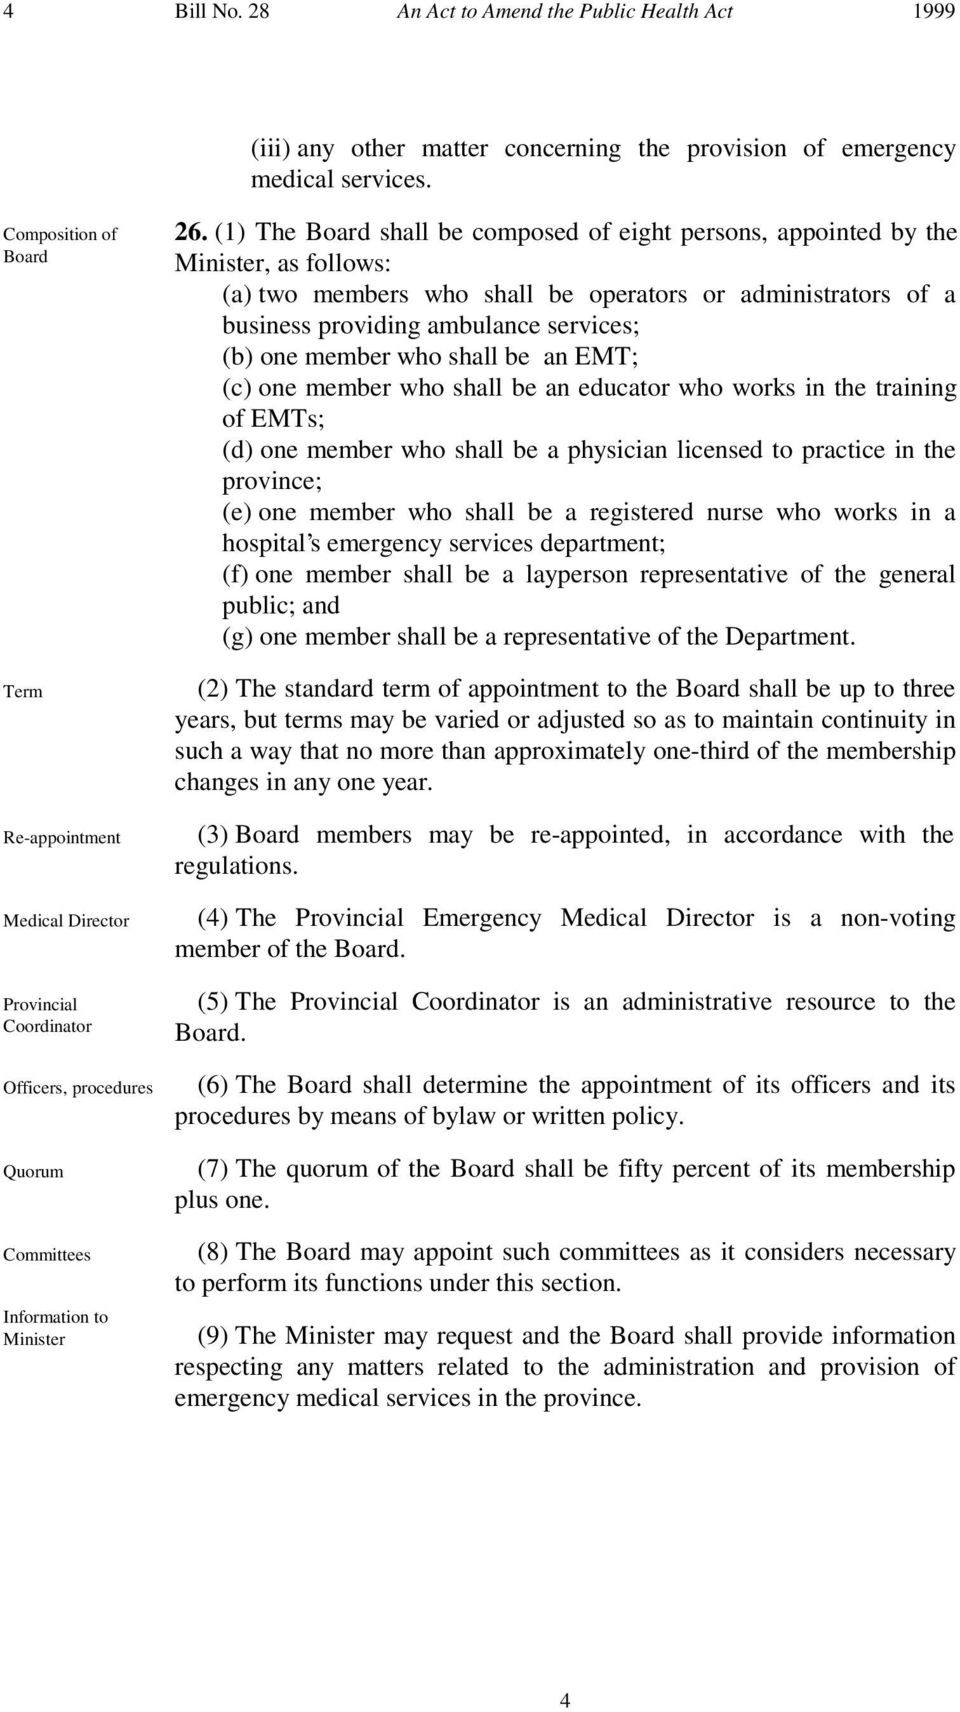 (1) The Board shall be composed of eight persons, appointed by the Minister, as follows: (a) two members who shall be operators or administrators of a business providing ambulance services; (b) one